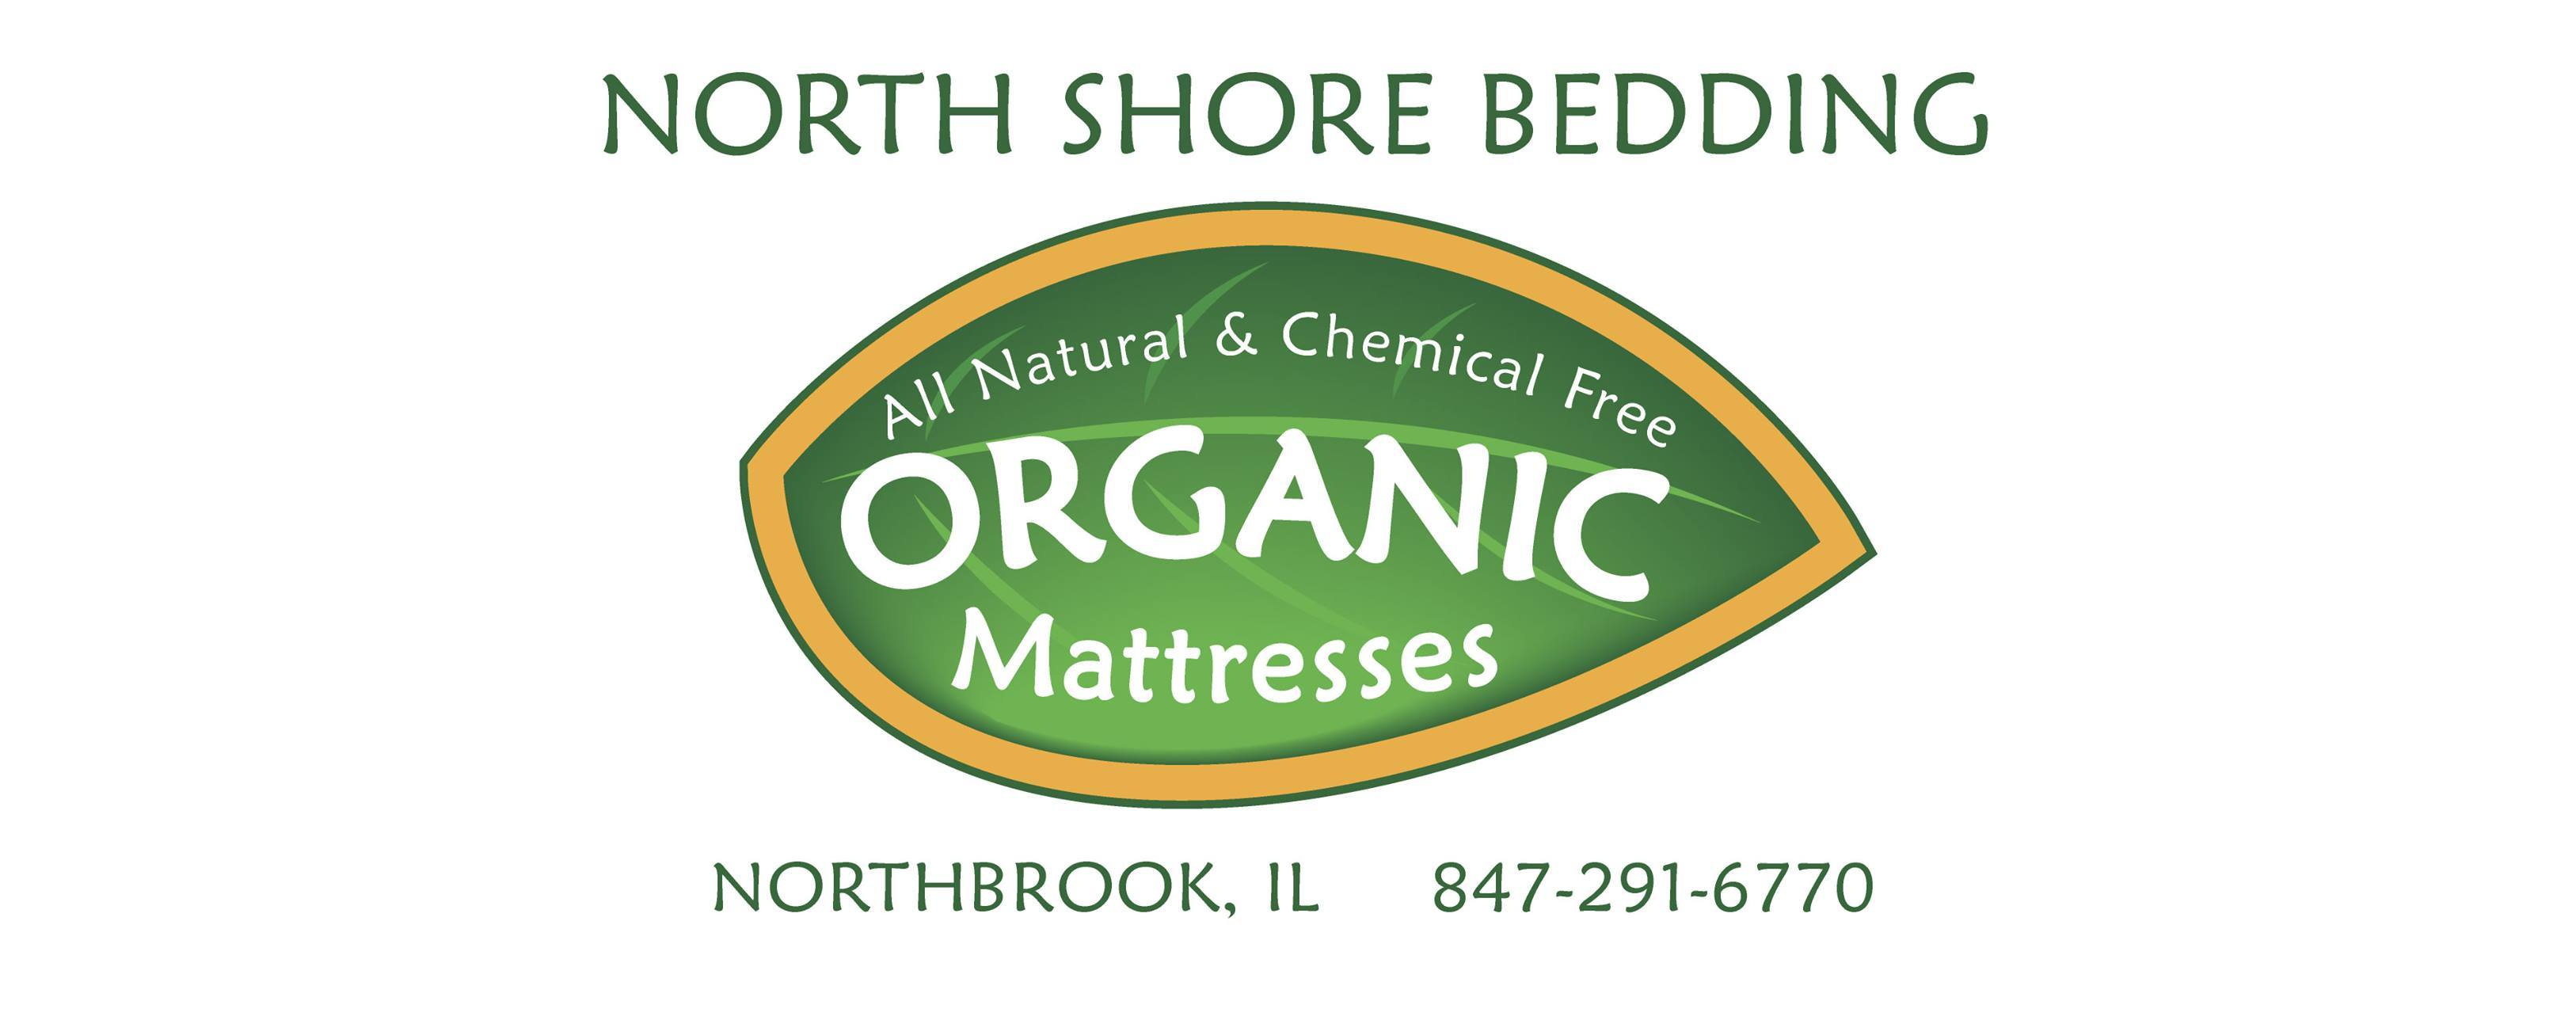 North Shore Bedding – Natural Vita Talalay Latex Mattress Store In Northbrook Illinois